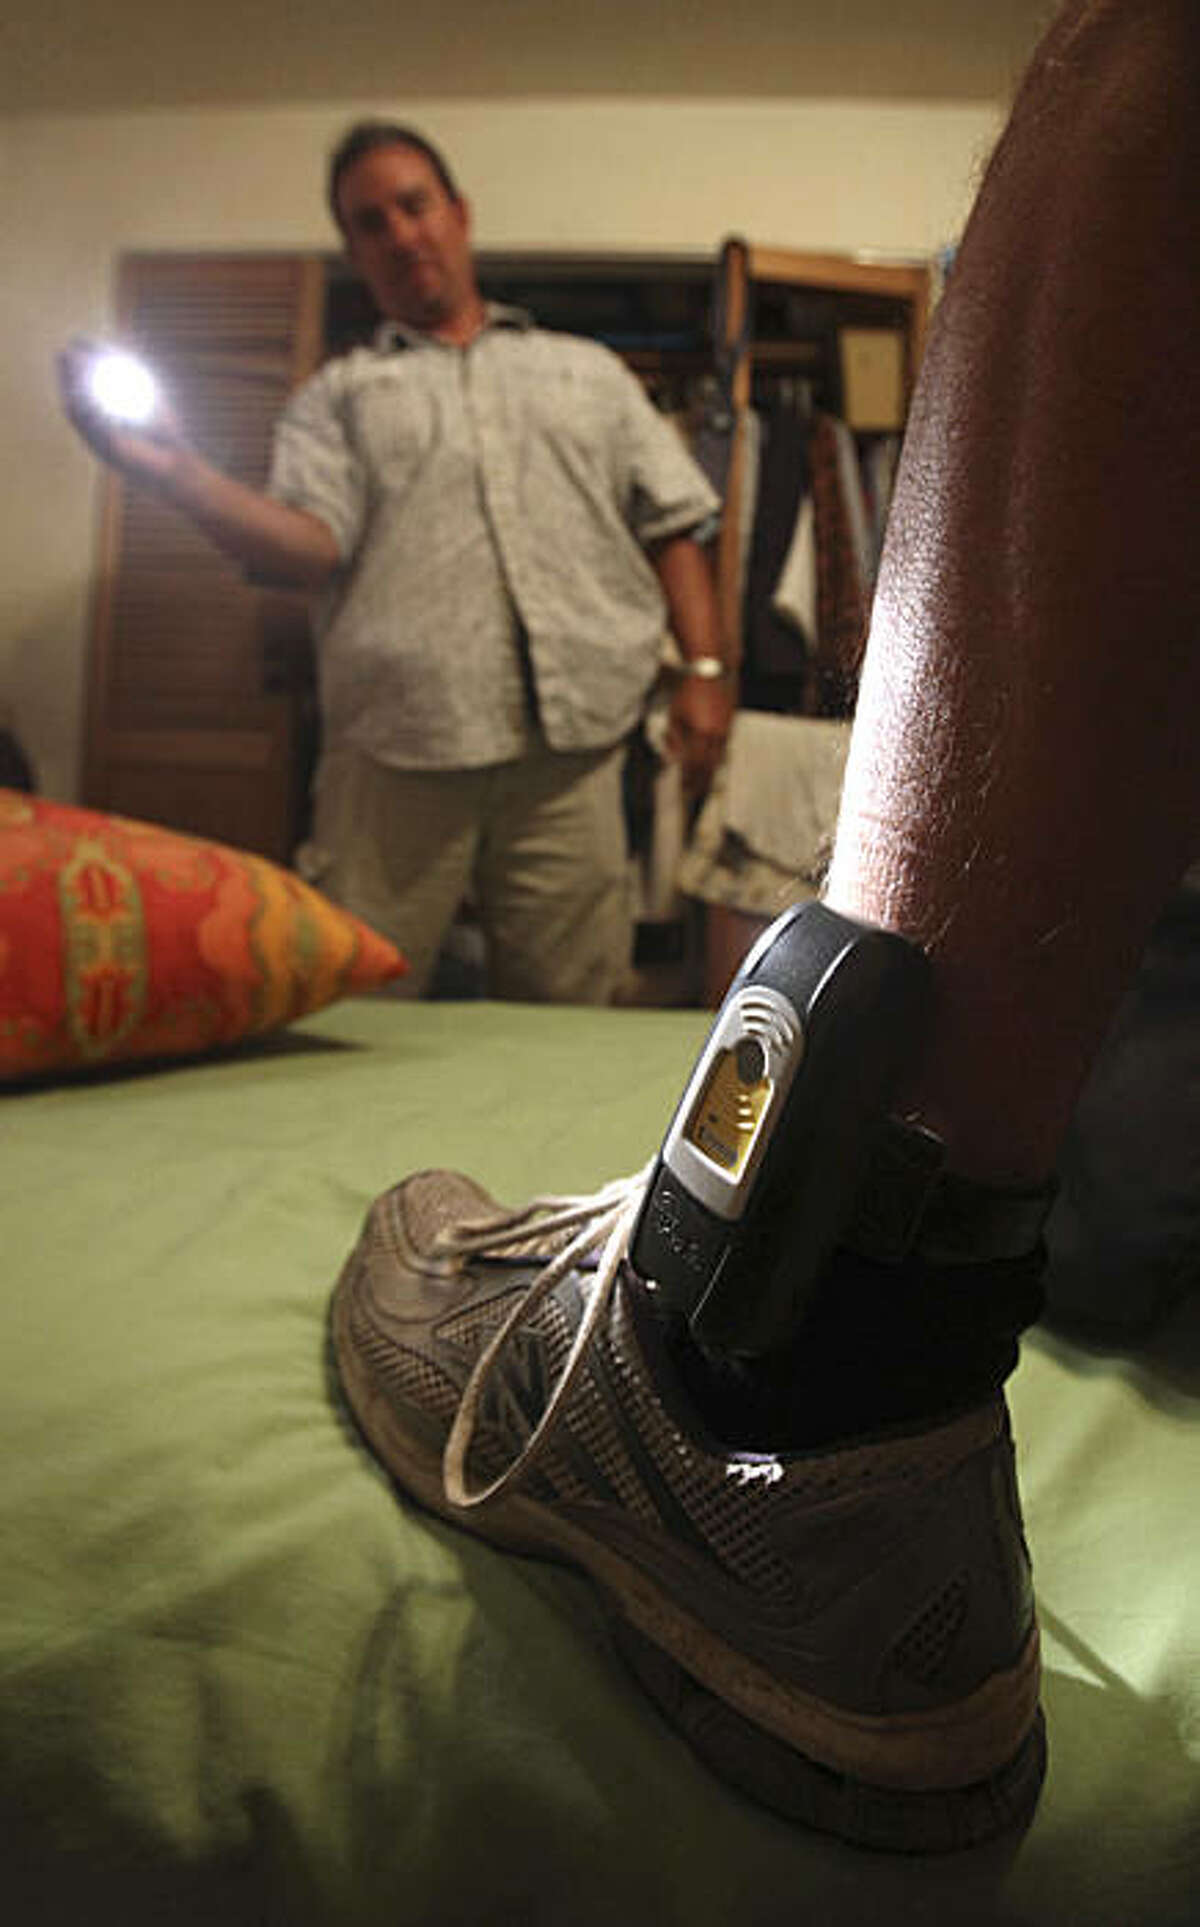 In this photo taken Monday, Aug. 3, 2009, Parole Agent Steve Nakamura uses a flashlight to inspect a GPS locater worn on the ankle of a parolee in Rio Linda, Calif. California lawmakers are expected to vote, Thursday, on a plan by Gov. Arnold Schwarzenegger to change the way the state punishes tens of thousands of criminals. If approved thousands of inmates would be sent to local jails, while others would be released early as a reward for completing prison rehabilitation programs. Electronic monitoring would be expanded to include inmates released to home, hospital or nursing home confinement for ill or infirm inmates, those over age of 60, or any inmate with less than 12 months left to serve. Parole agents can check the location of where individual is or has been.(AP Photo/Rich Pedroncelli)